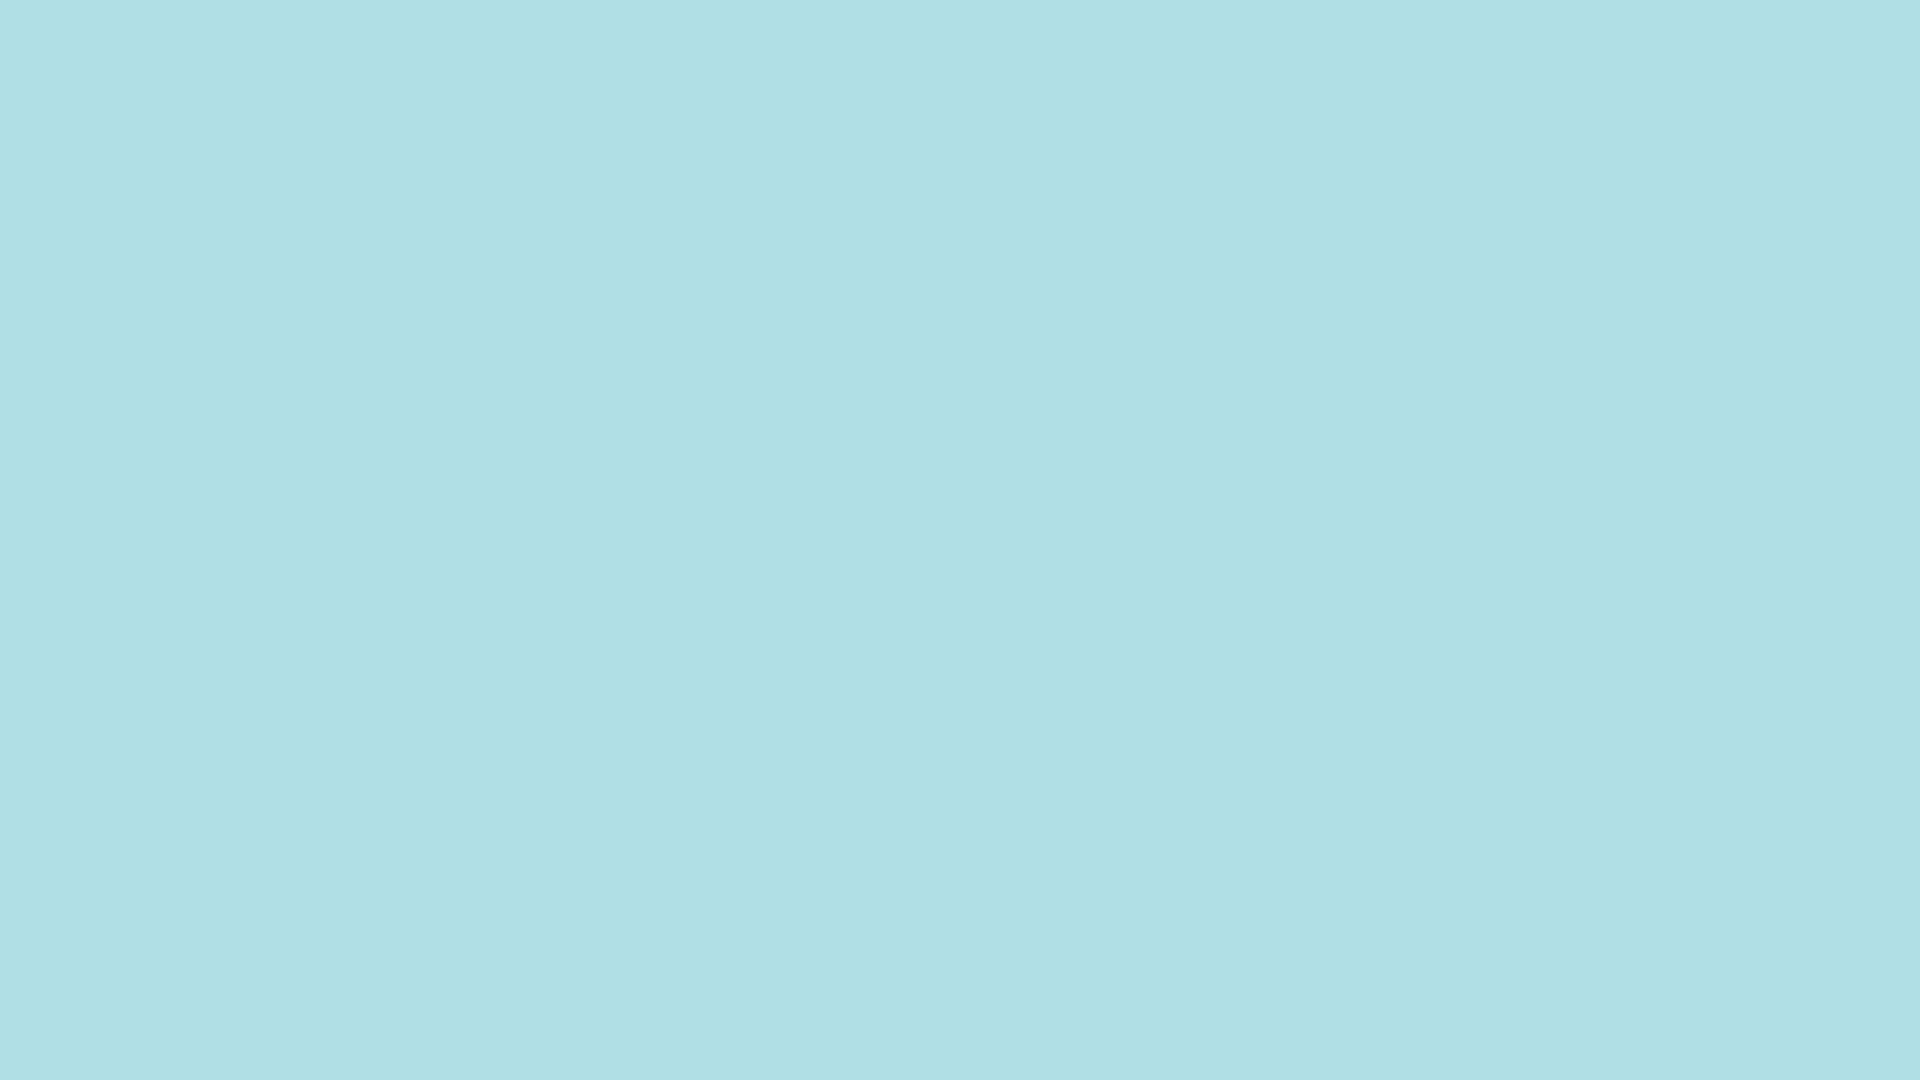 1920x1080 Powder Blue Web Solid Color Background